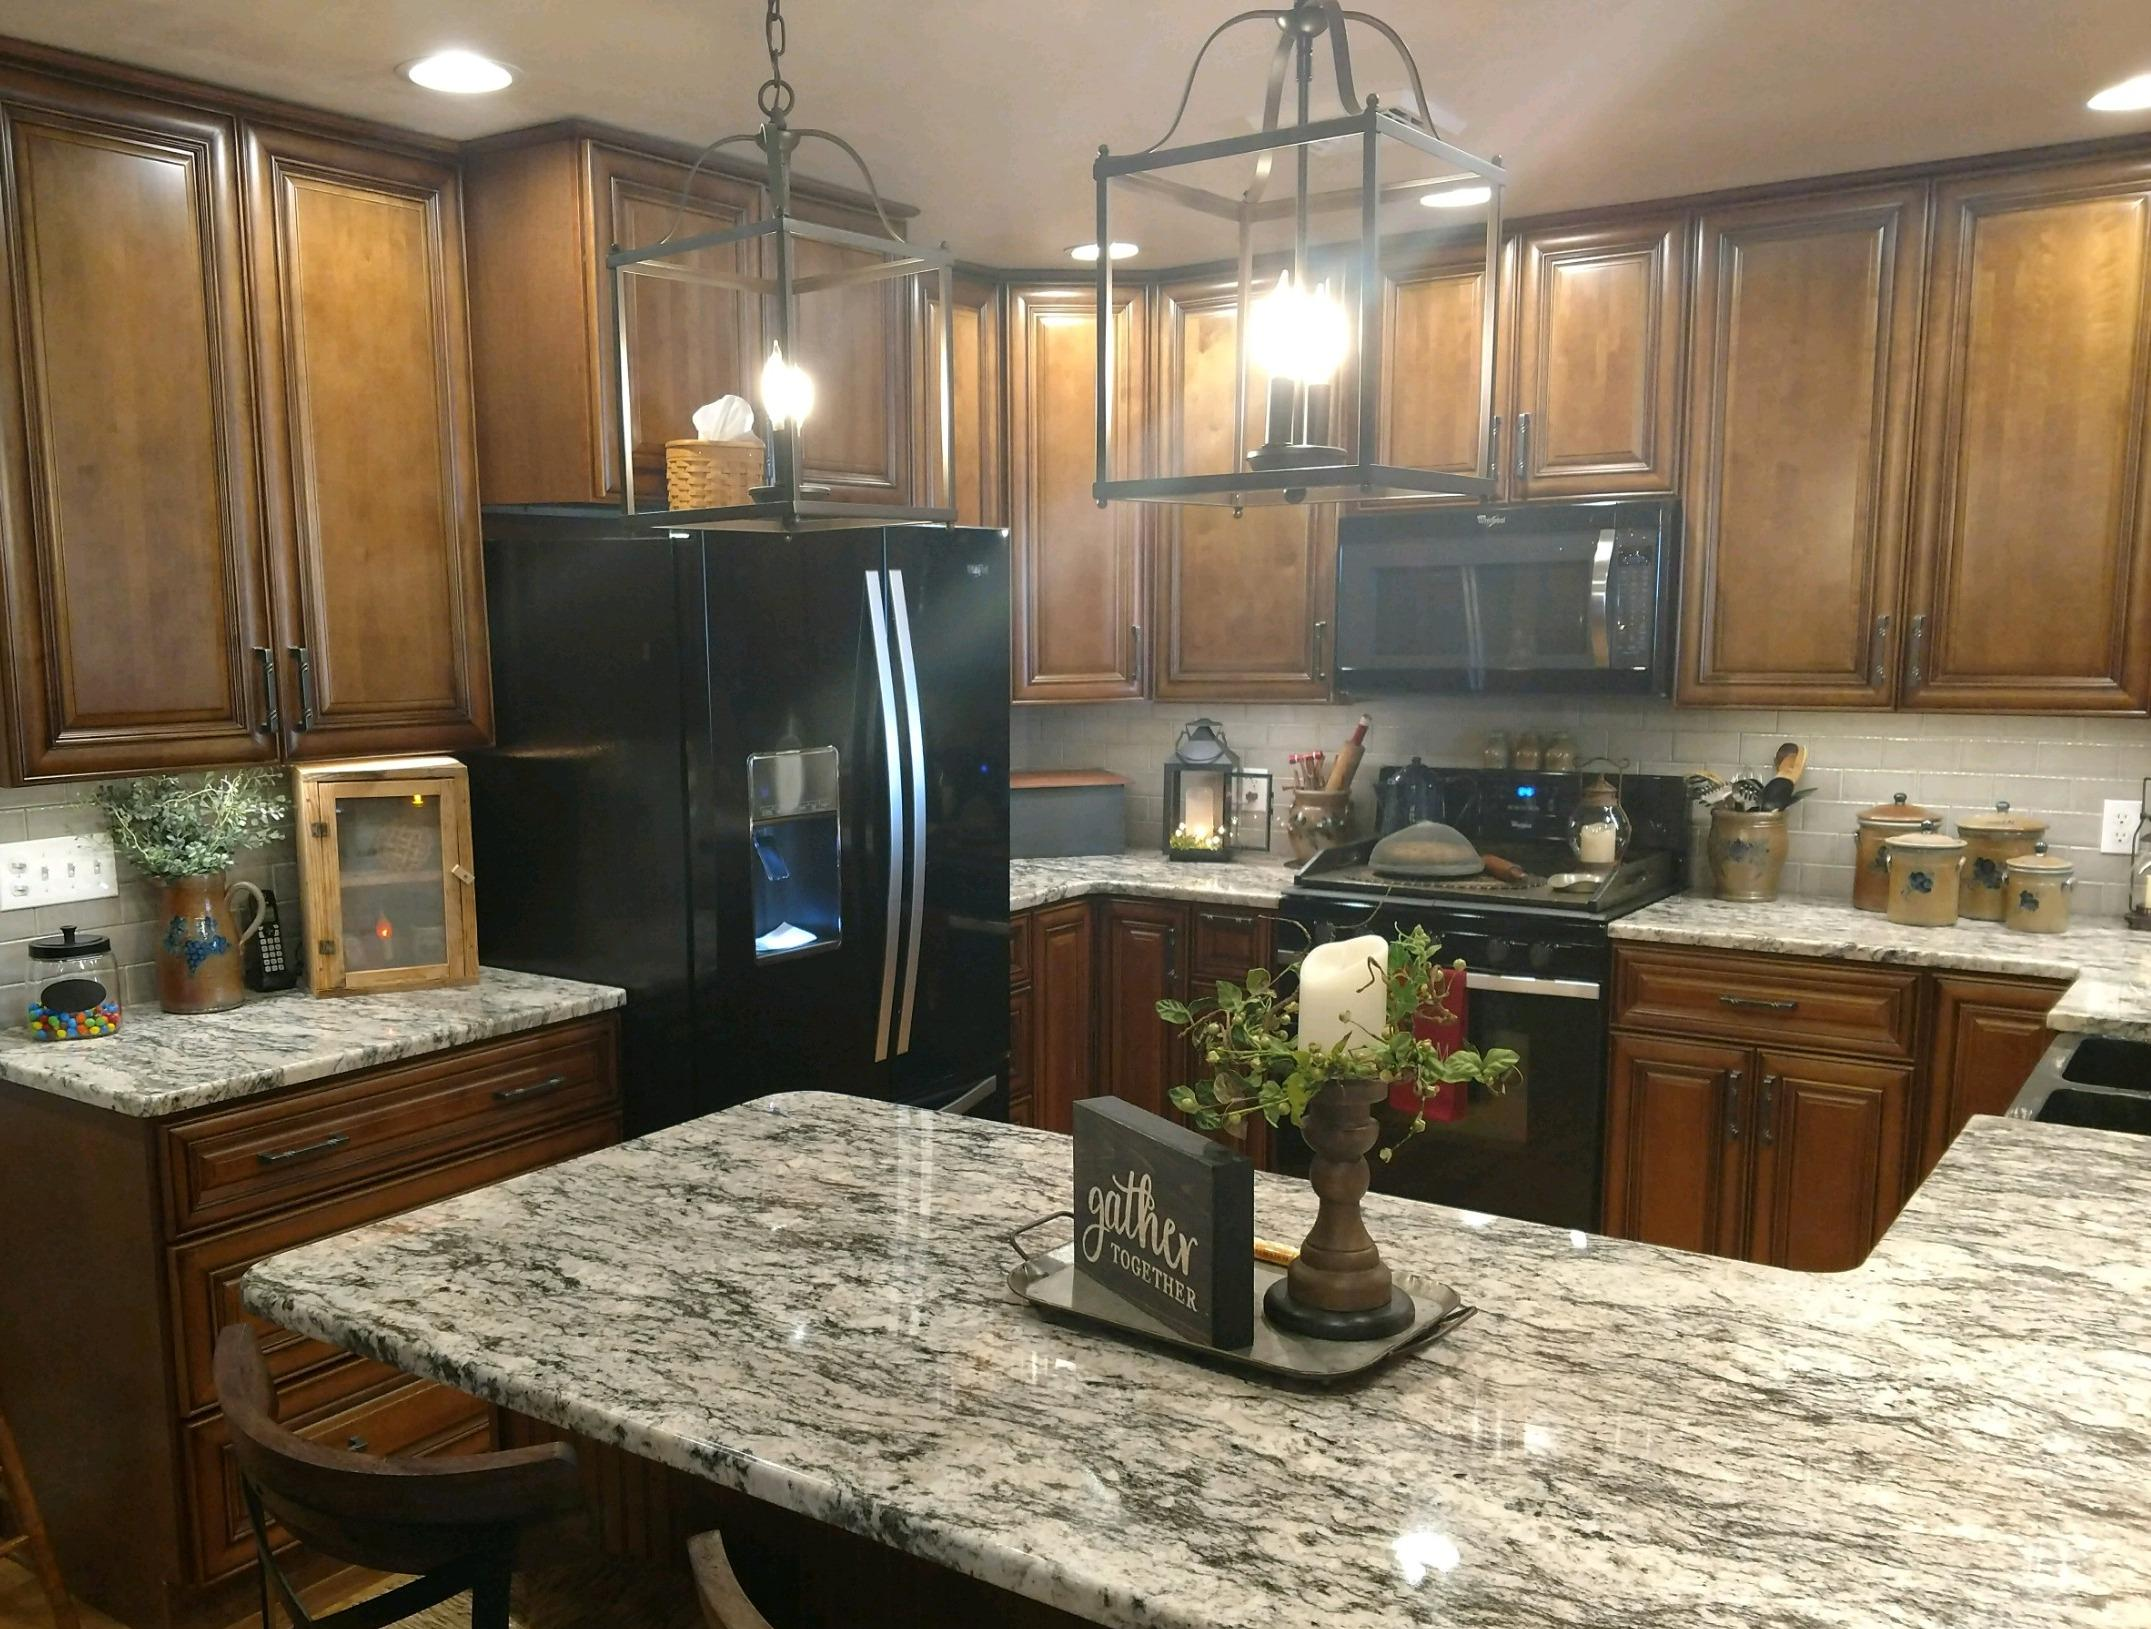 Accurate Upgrades Home Improvements LLC image 3